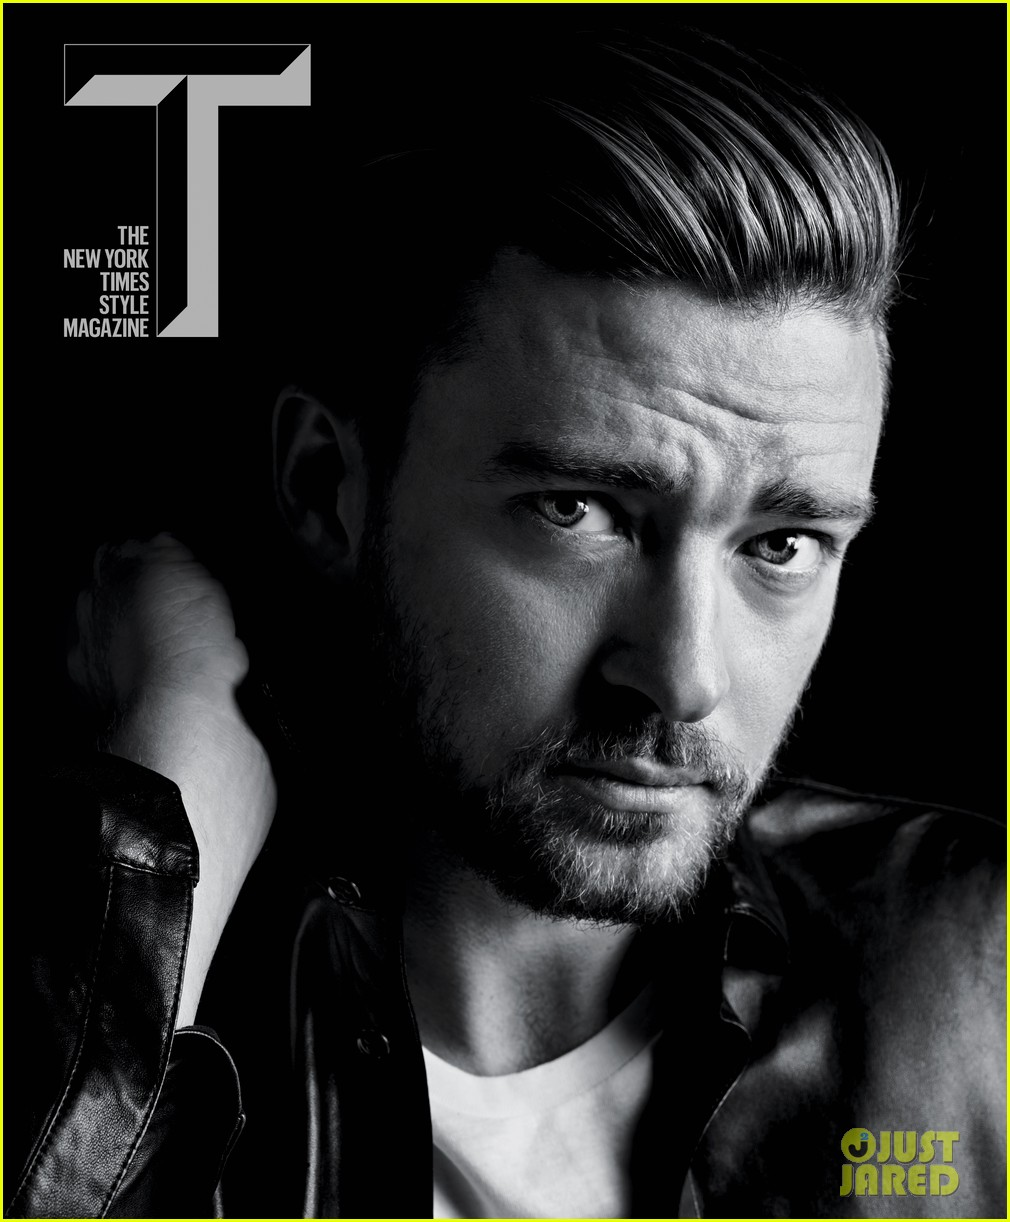 justin timberlake covers 't the new york times style magazine' photo